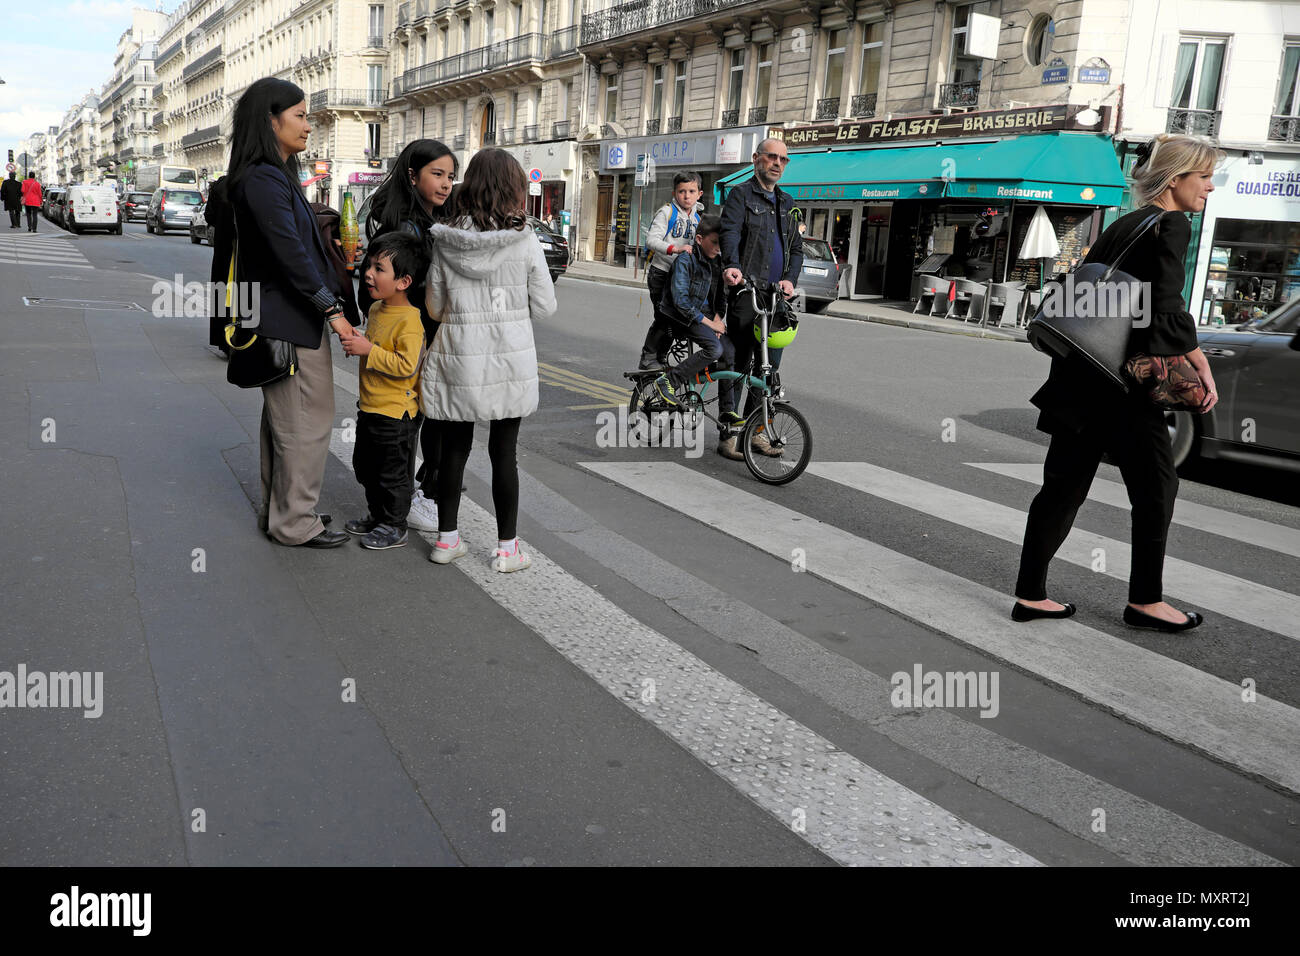 Parents and children going home on an afternoon after the school day walking and on bike near a pedestrian crossing  in Paris France  KATHY DEWITT - Stock Image